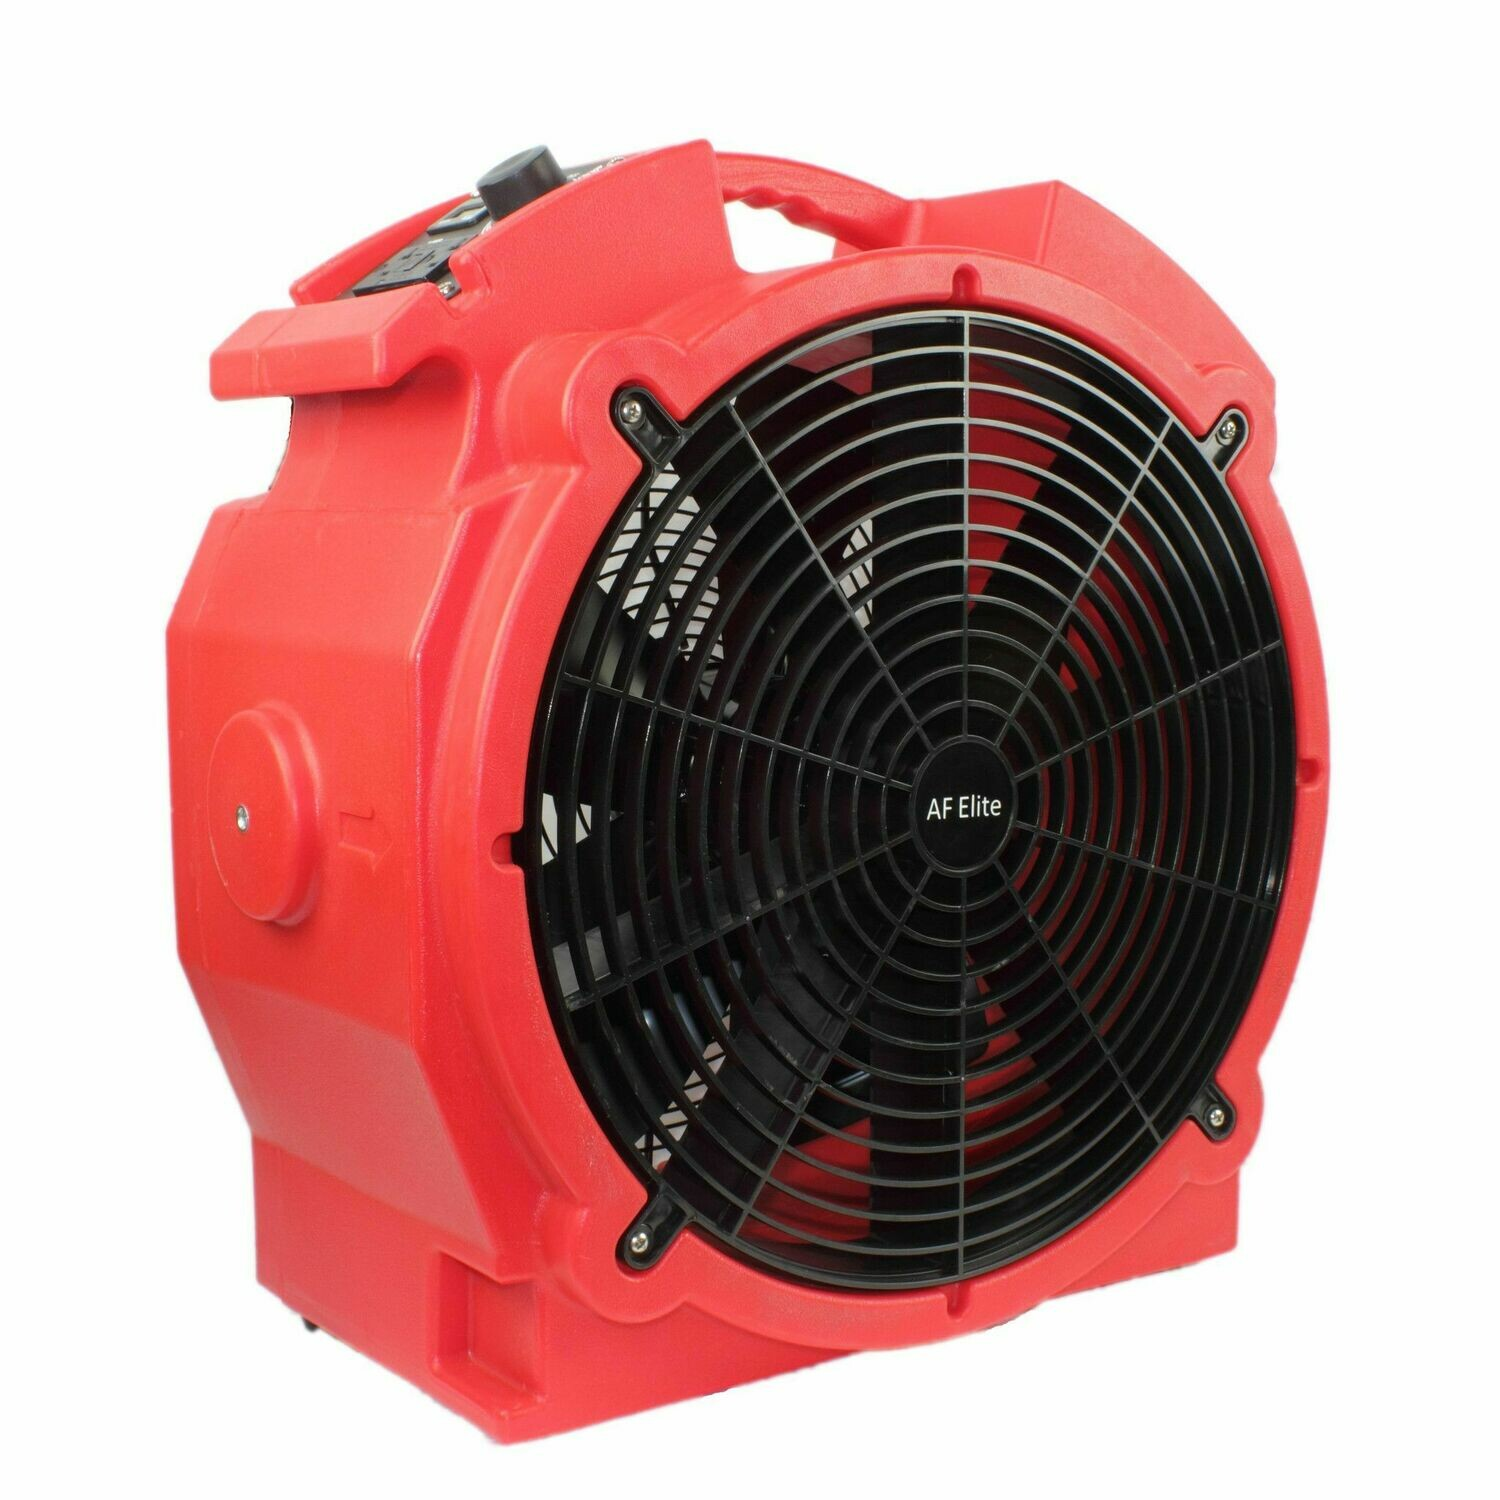 AF Elite Axial Airmover (Red)